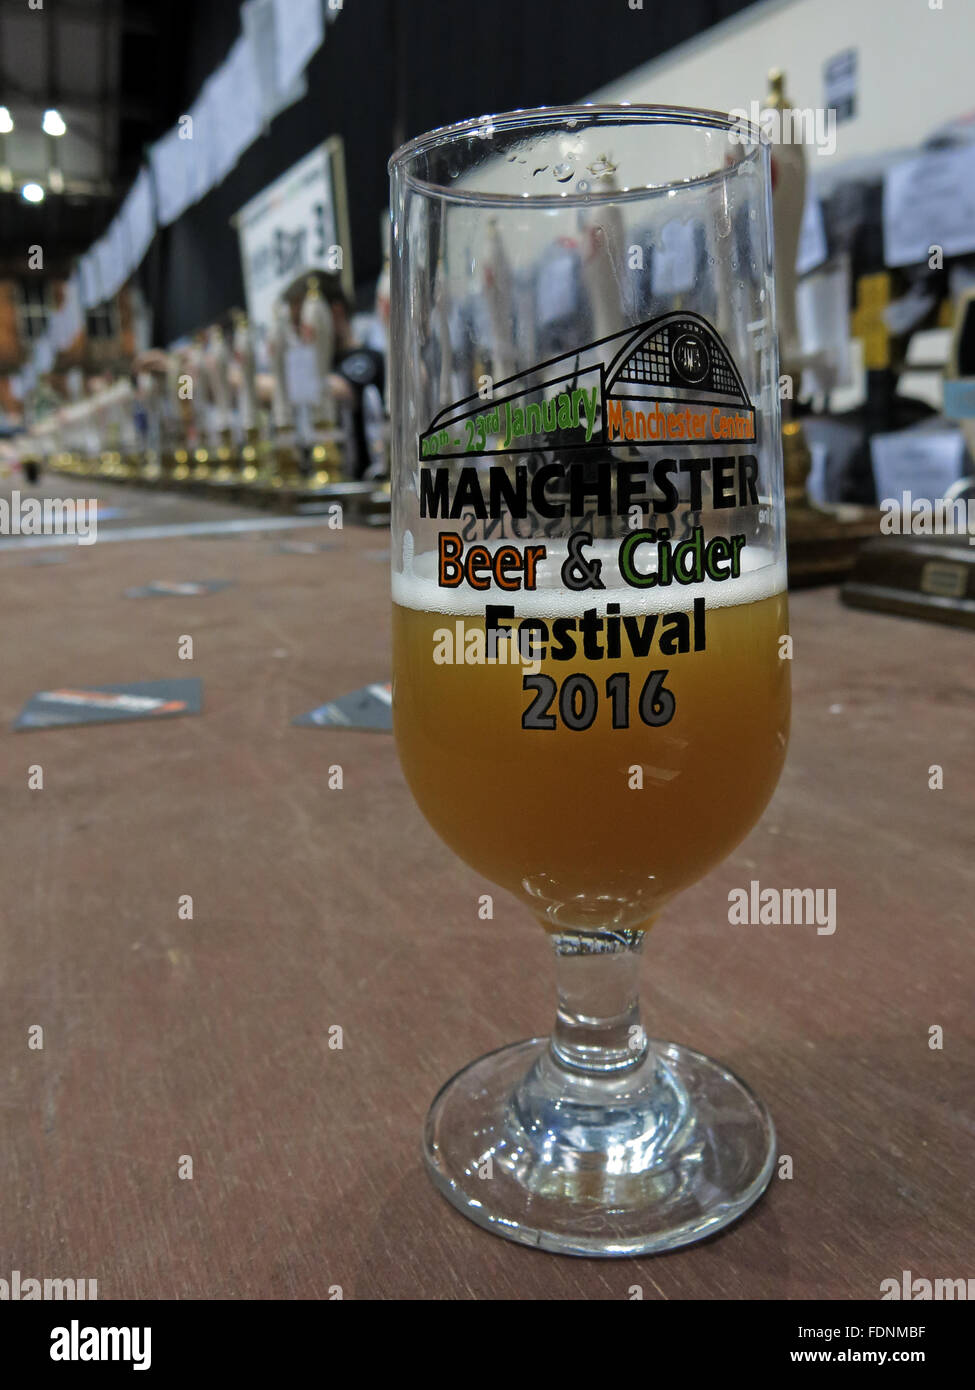 Manchester Central CAMRA winter beer festival 2016,Lancs,England, UK Beer Glass - Stock Image